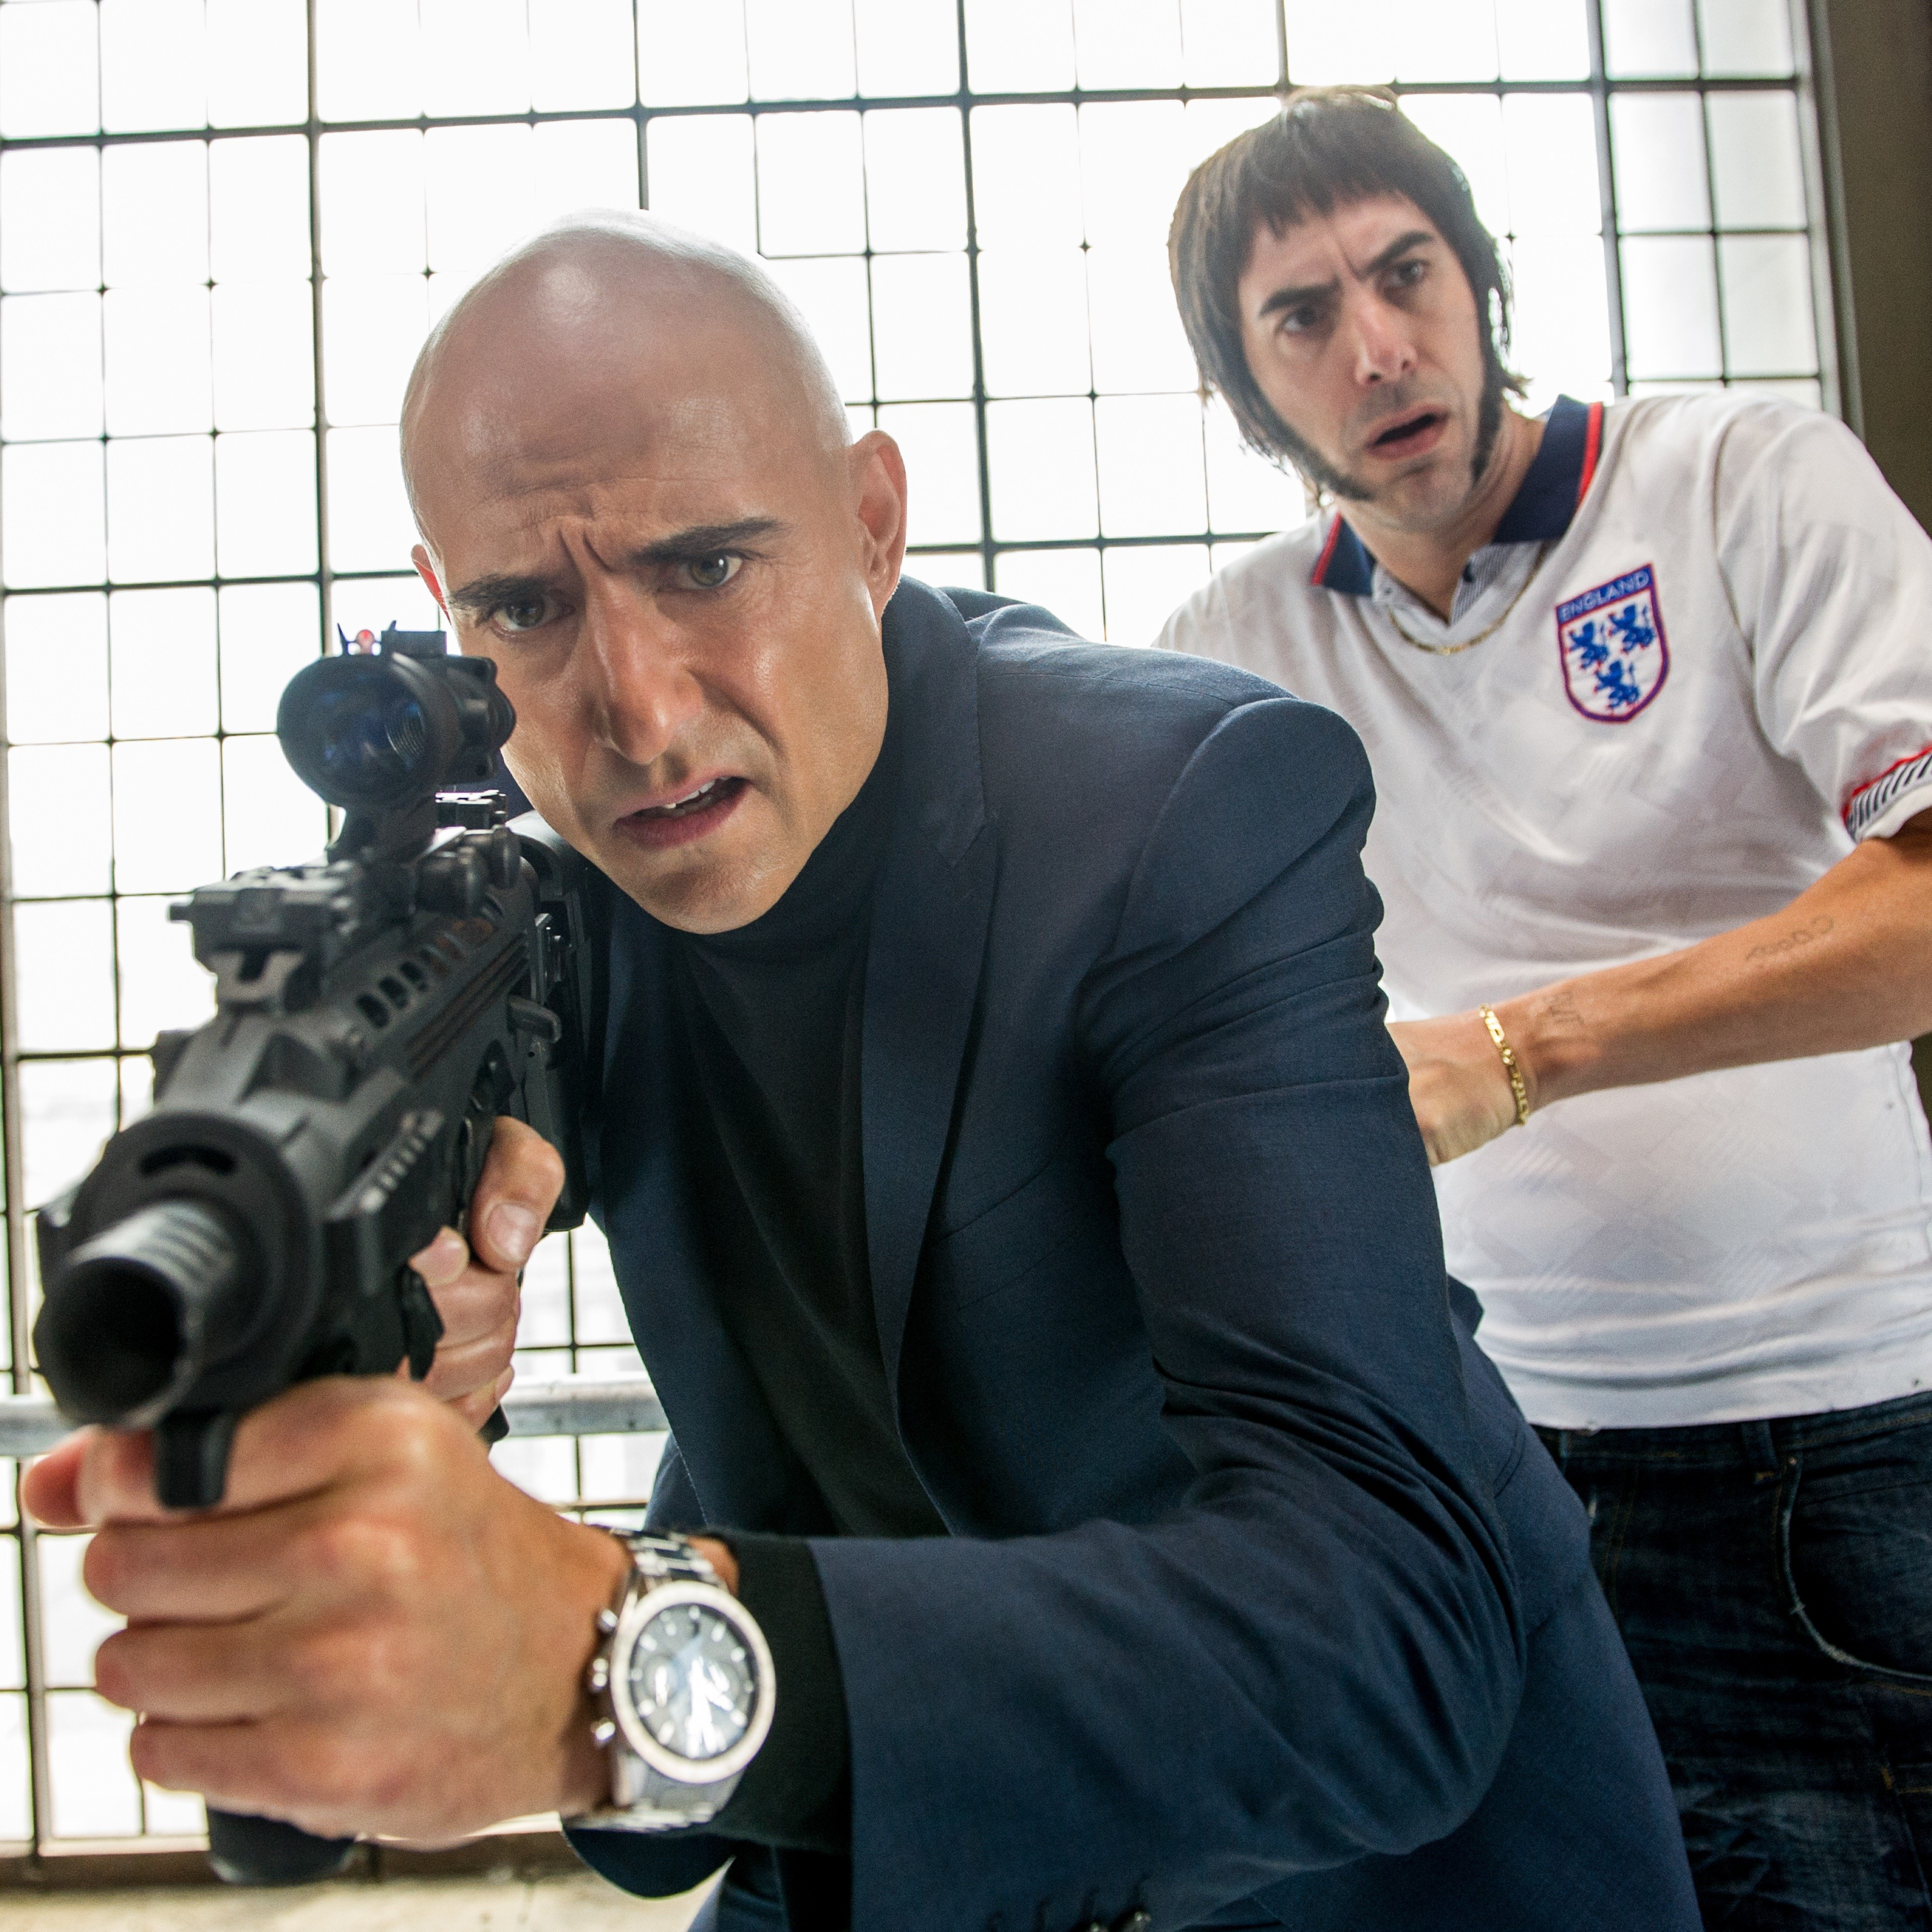 brothers grimsby torrent